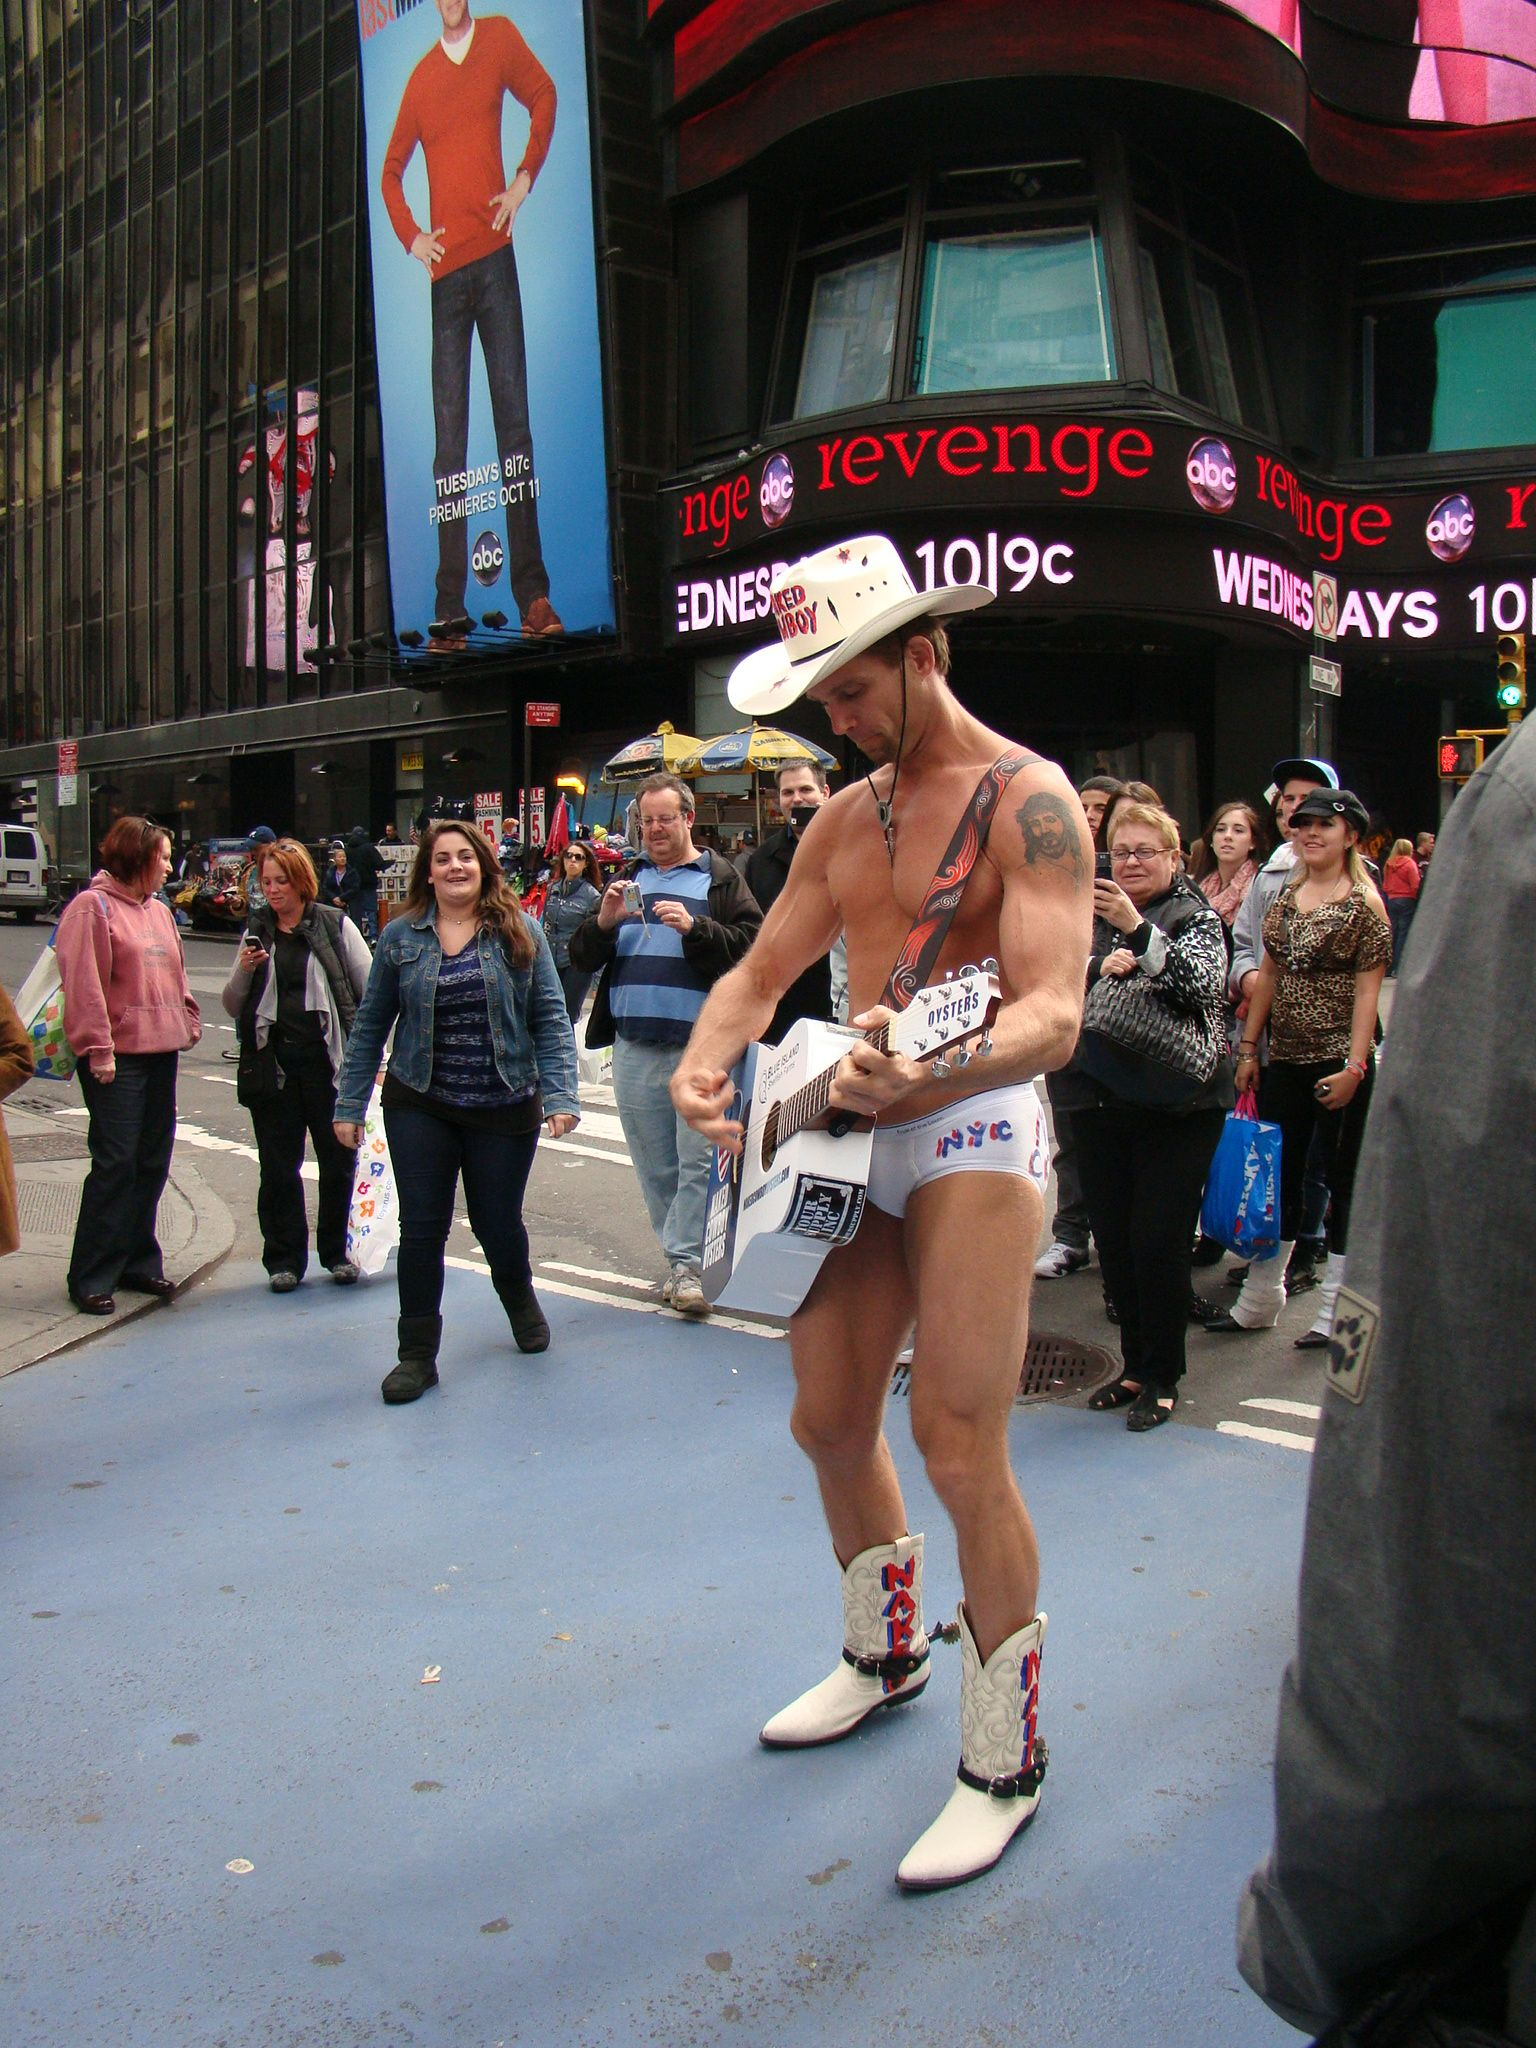 Joe Rogers: The semi-naked truth about Times Square - al.com